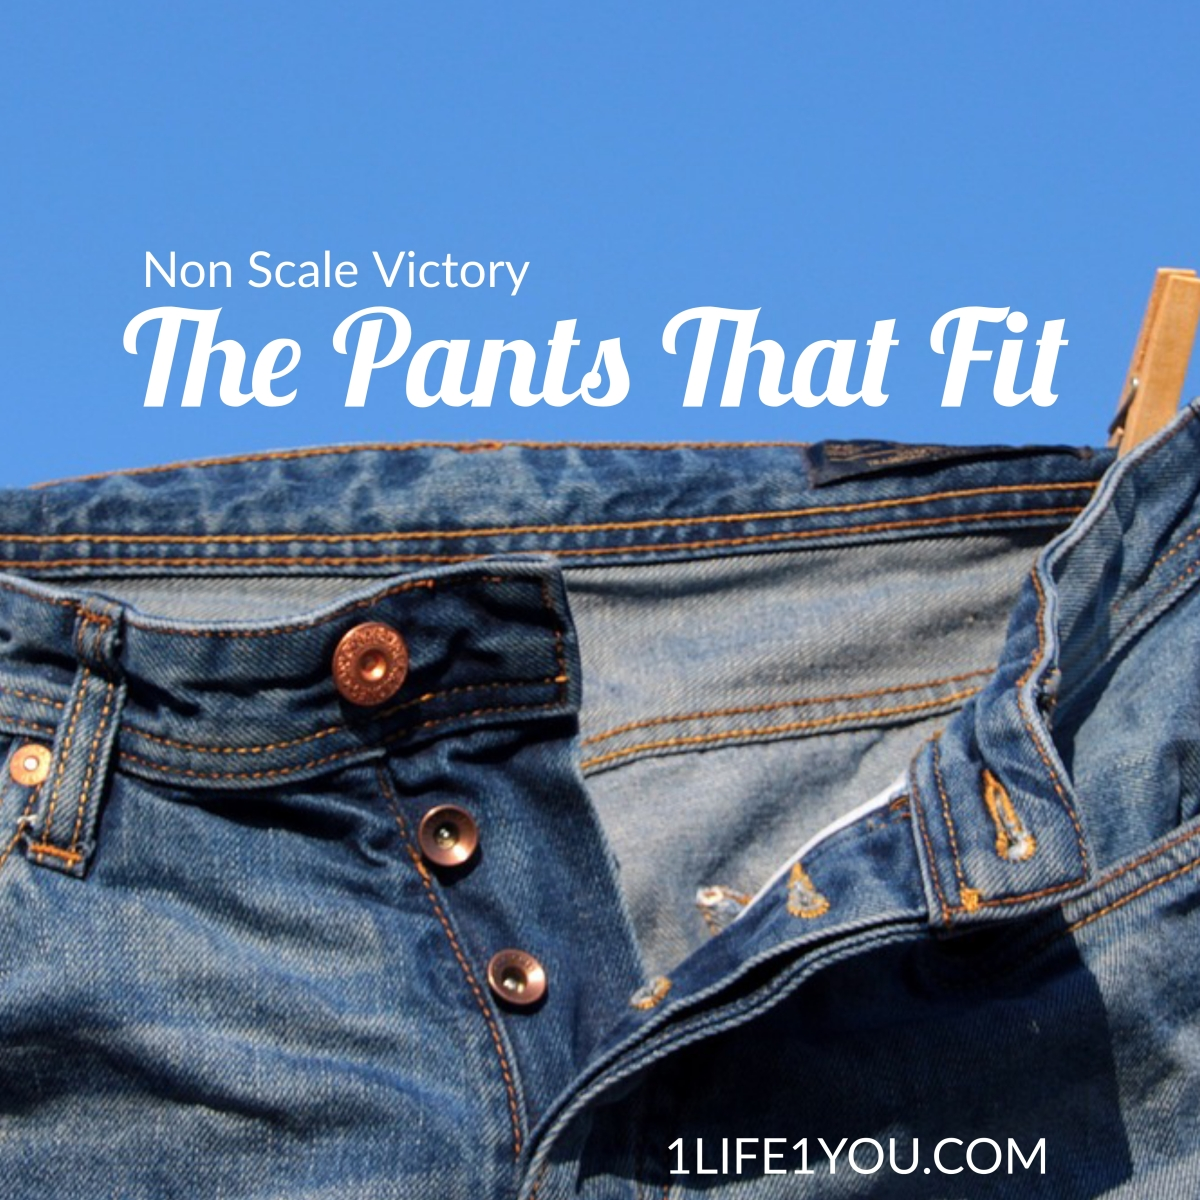 The Pants That Fit